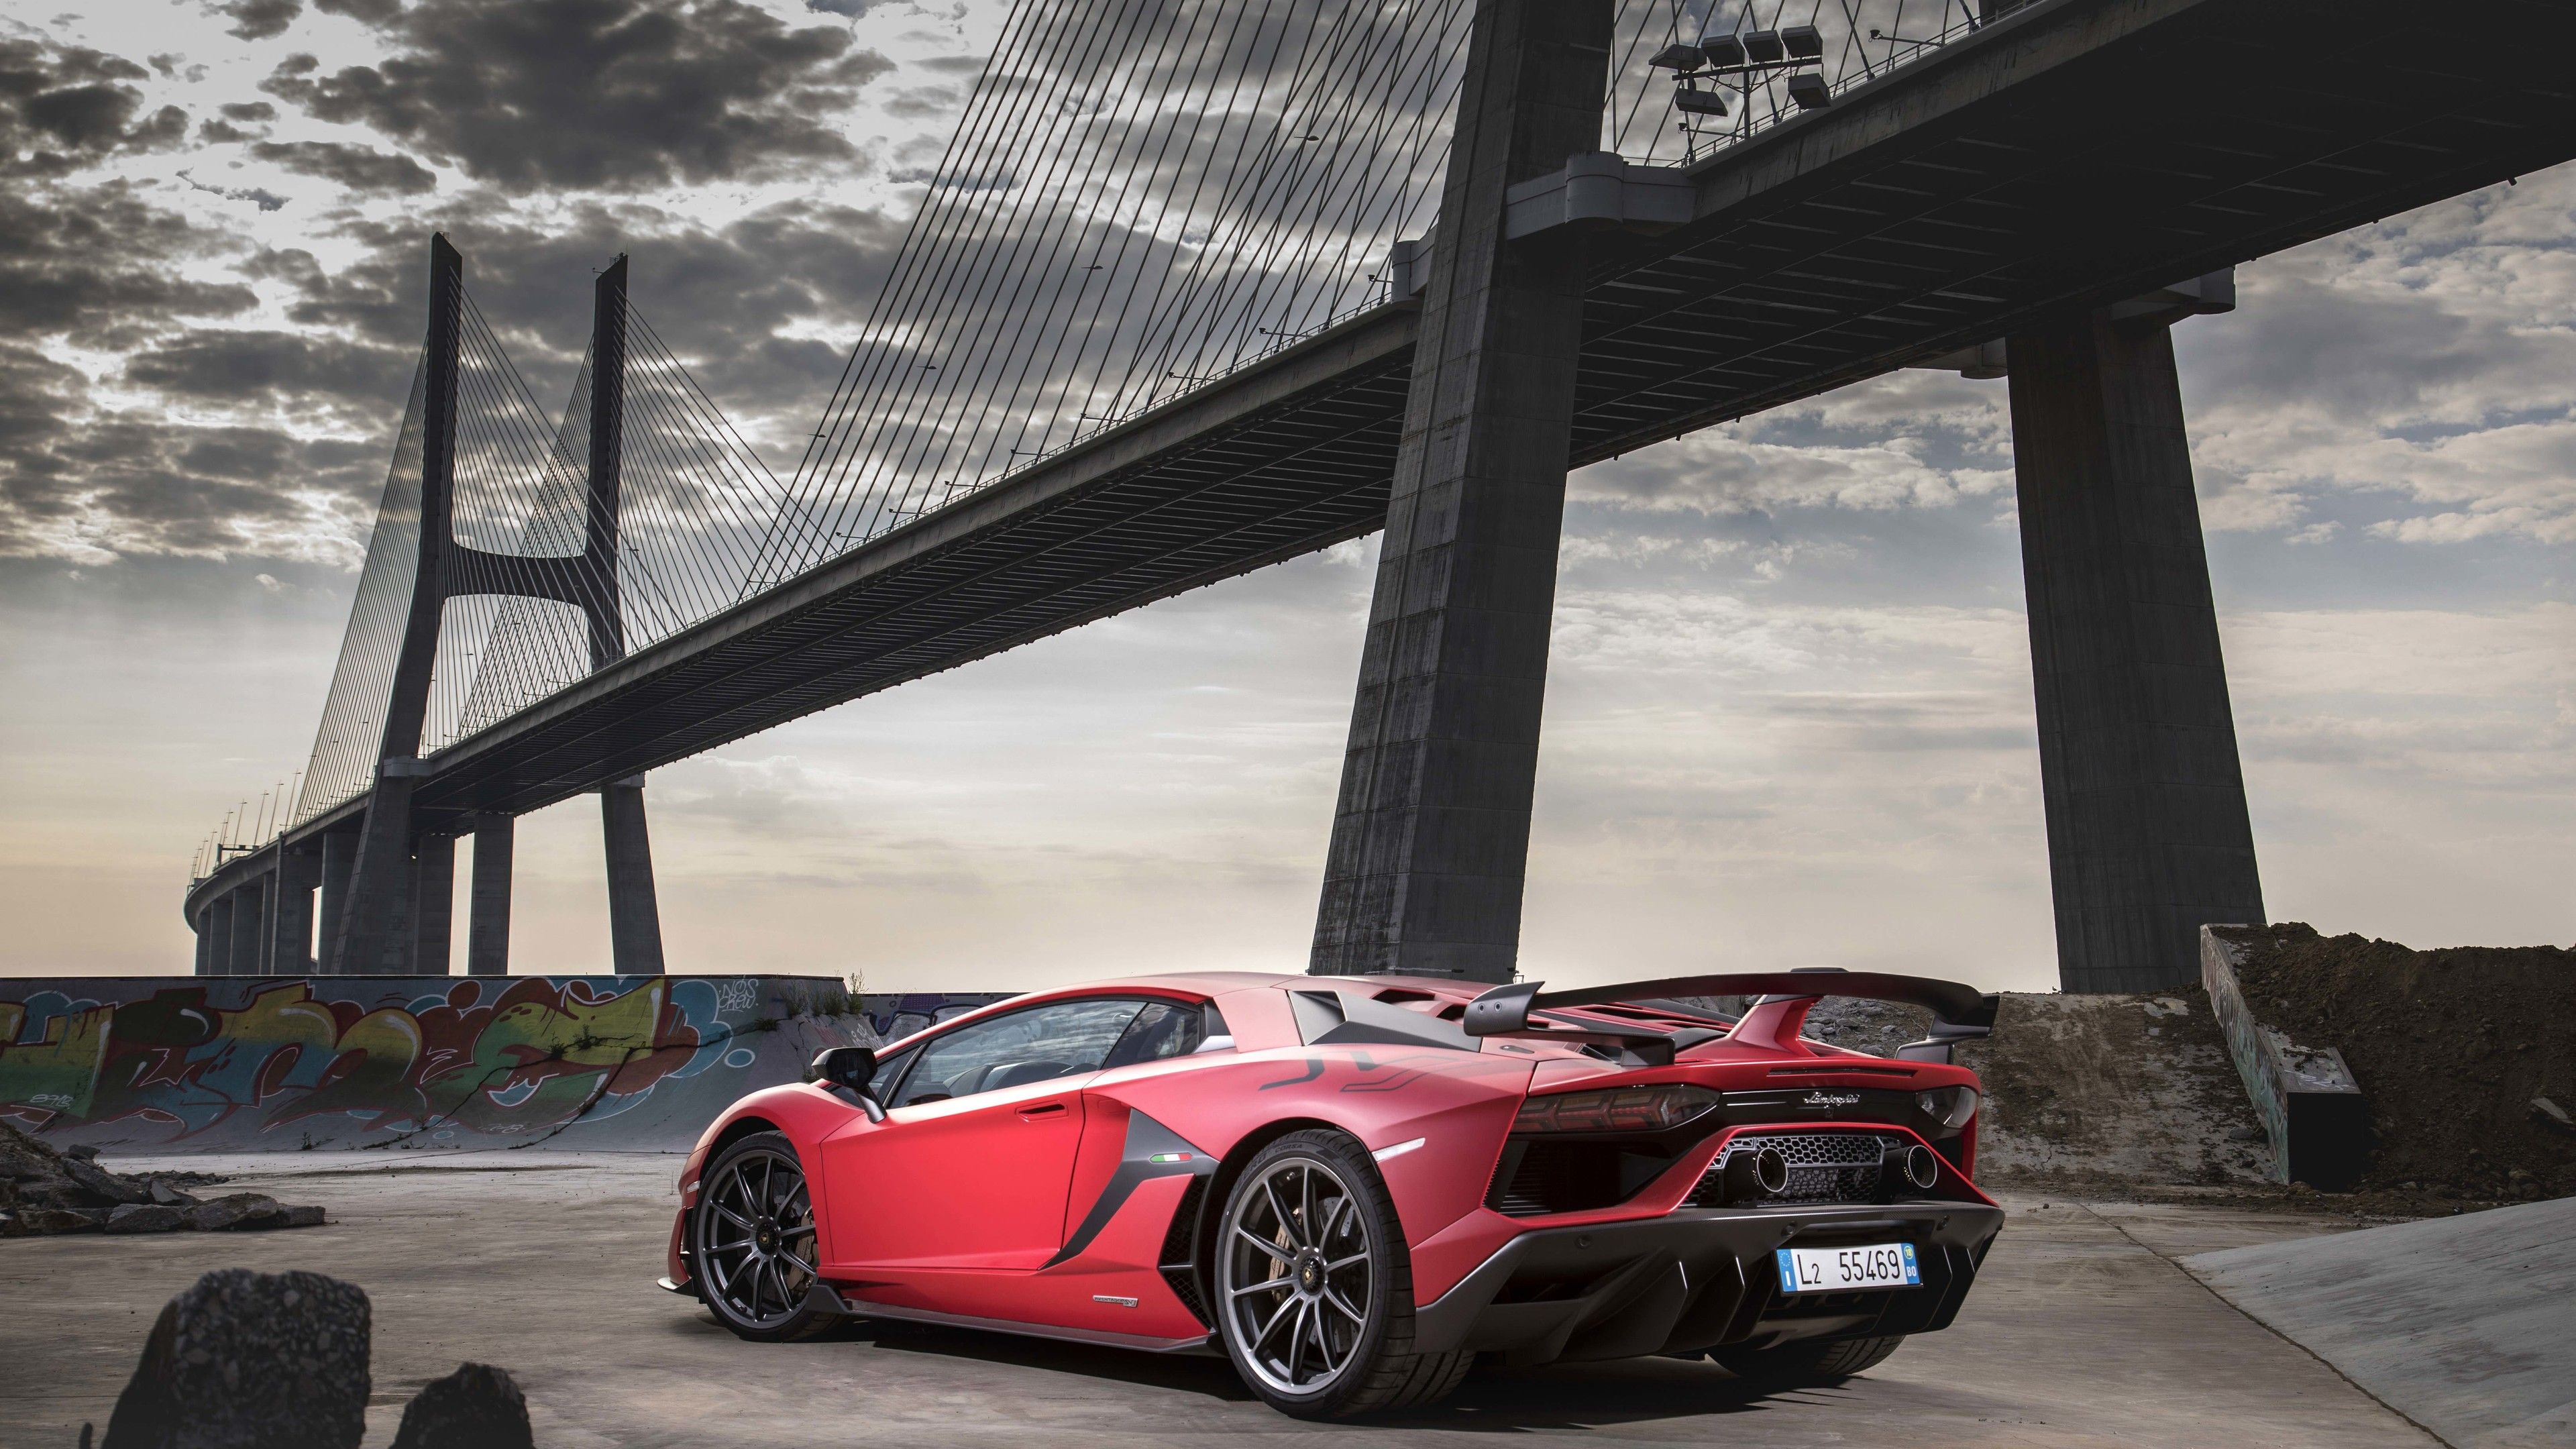 Wallpaper 4k 2018 Lamborghini Aventardor Svj Rear 5k 2018 Cars Wallpapers 4k Wallpapers 5k Wallpapers Cars Wallpapers Hd Wallpapers Lamborghini Aventador S Lamborghini Aventador